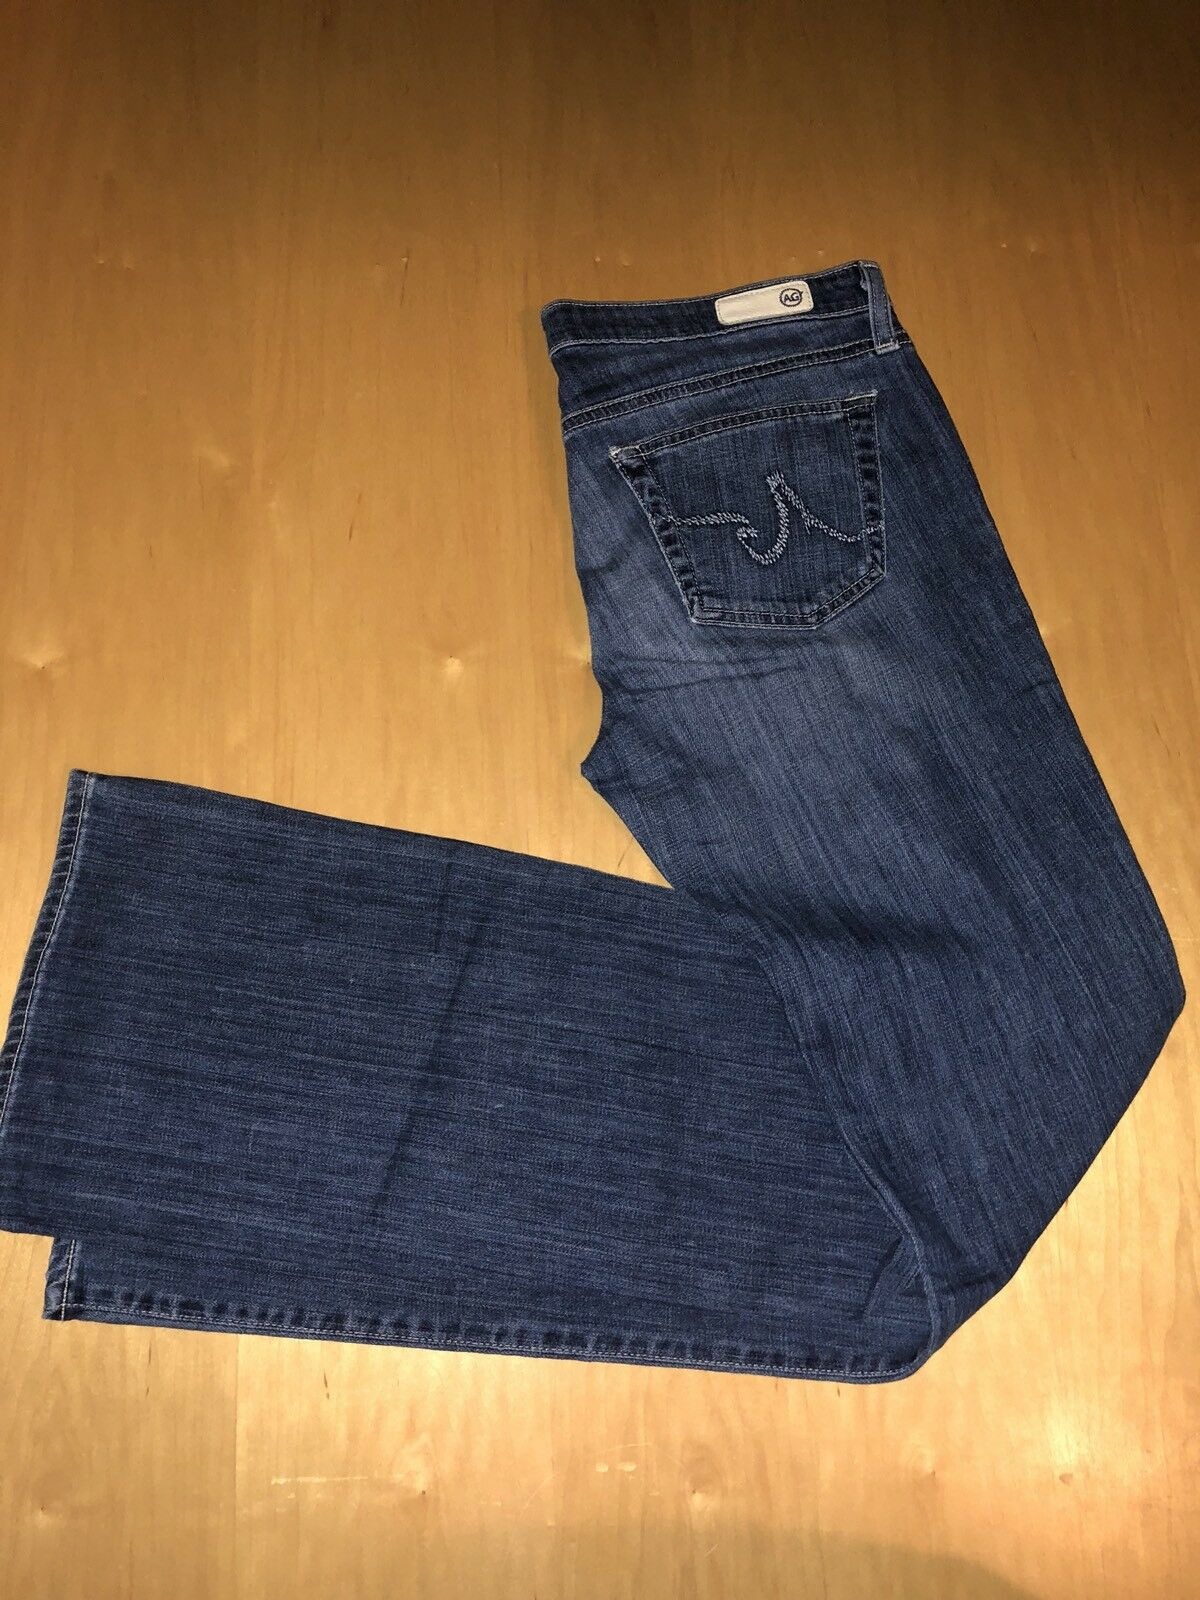 AG Adriano goldschmied The Club Jeans  sz 31